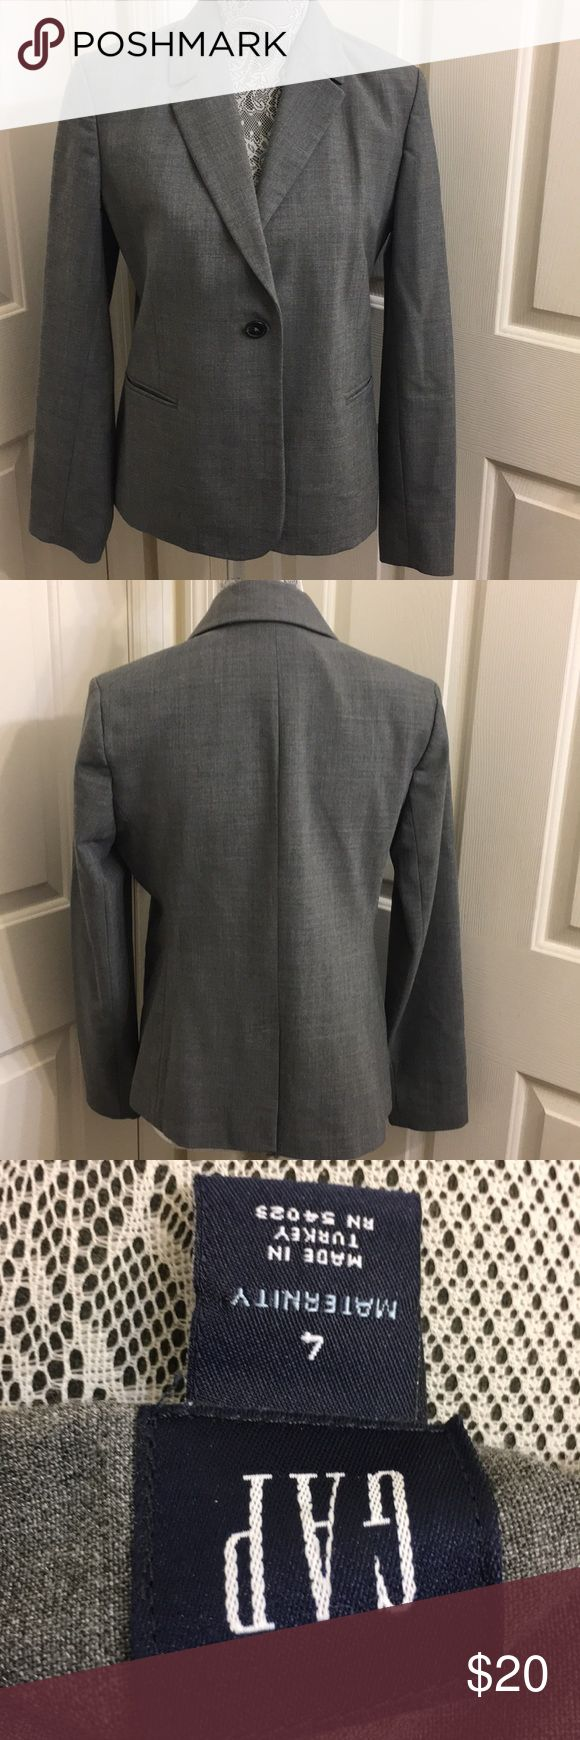 Gap grey maternity suit jacket Like new. Great condition. GAP Jackets & Coats Blazers